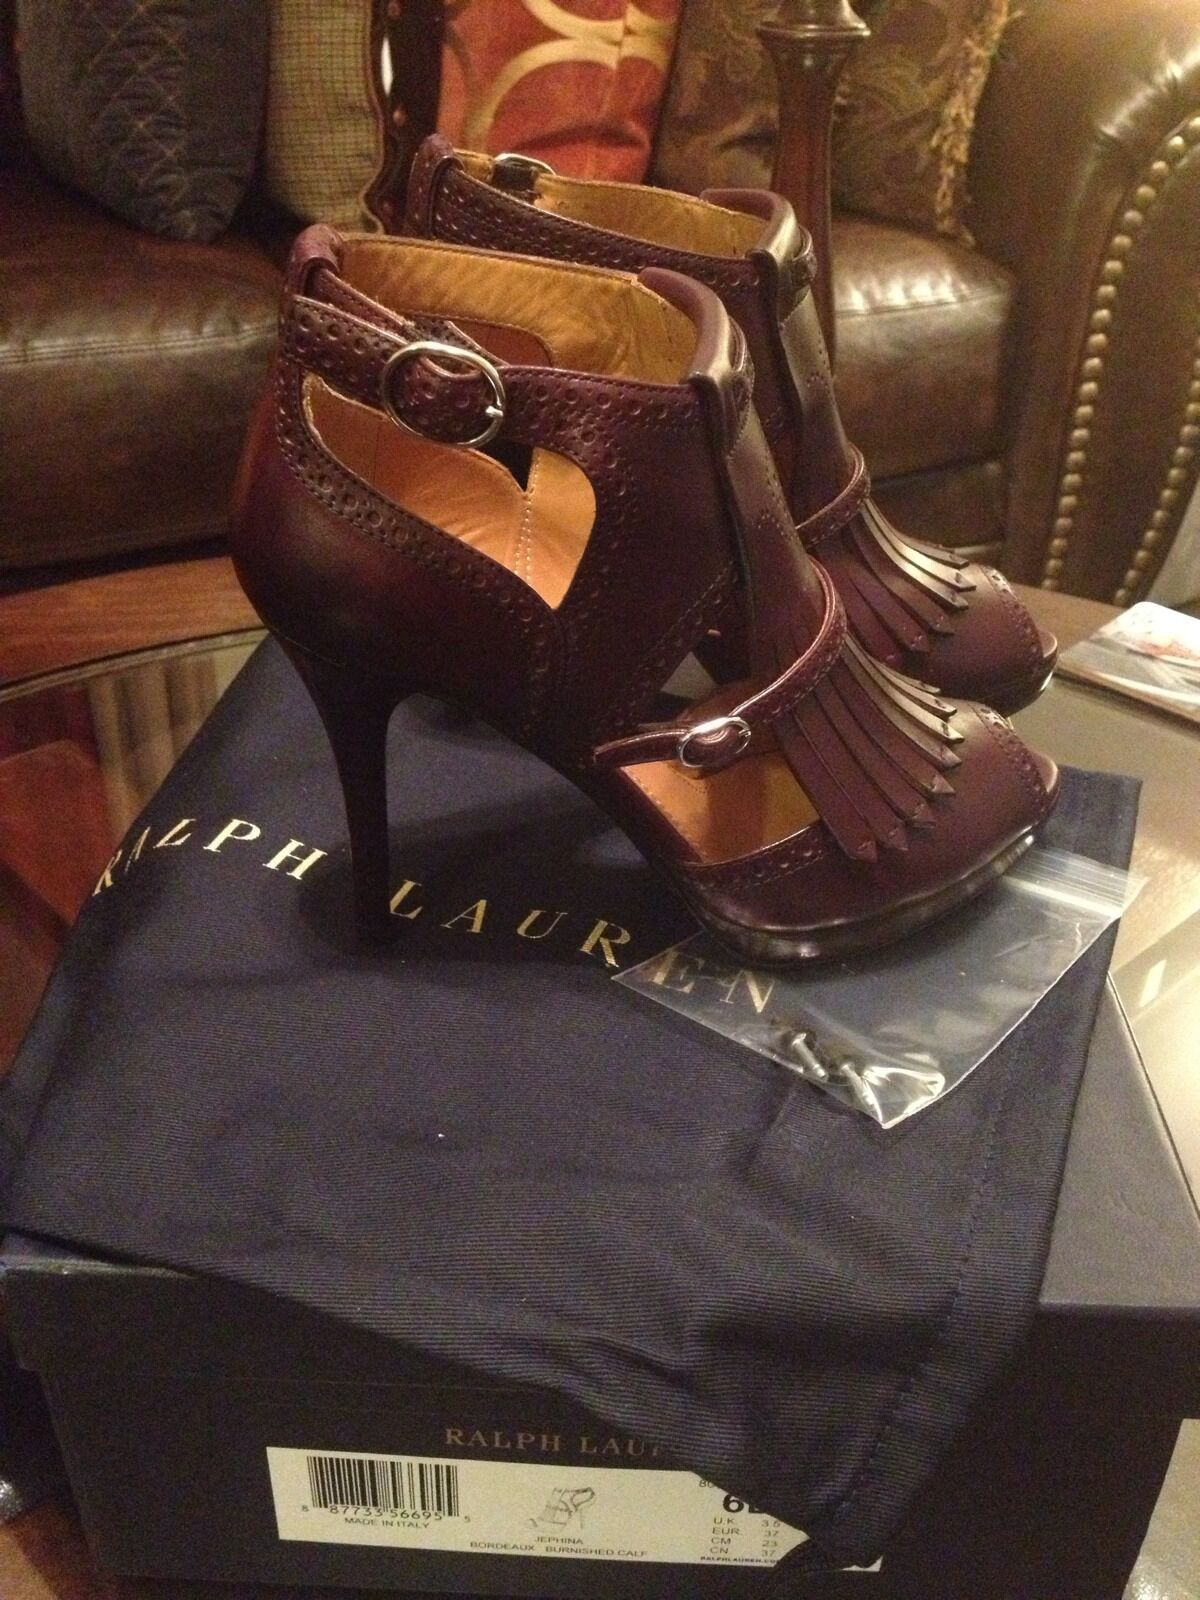 RALPH LAUREN collection  jephina  veau veau veau heels SZ 6 B made in  New in Box 274418